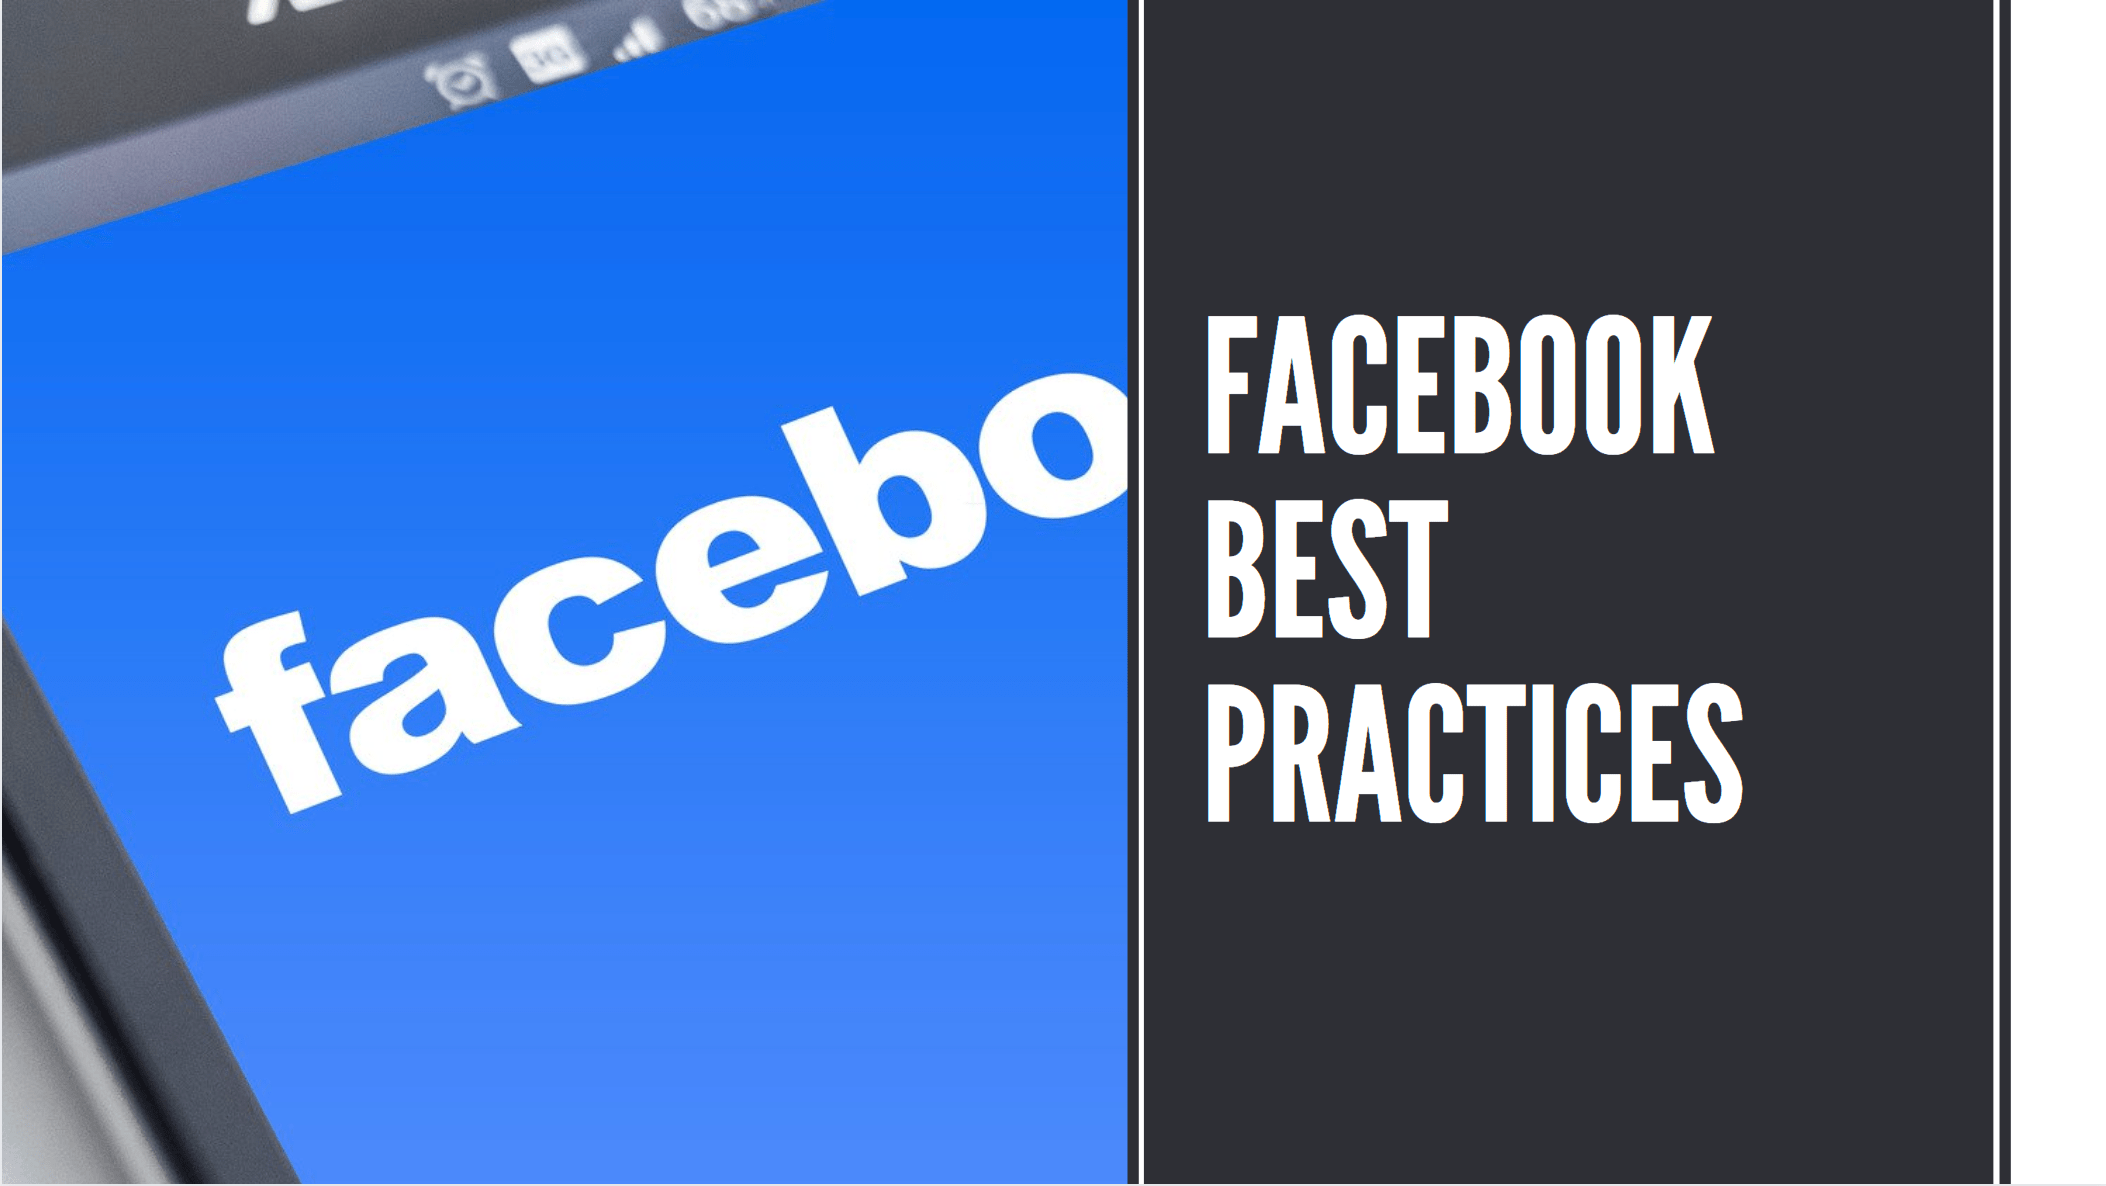 Facebook Targeting Best Practices